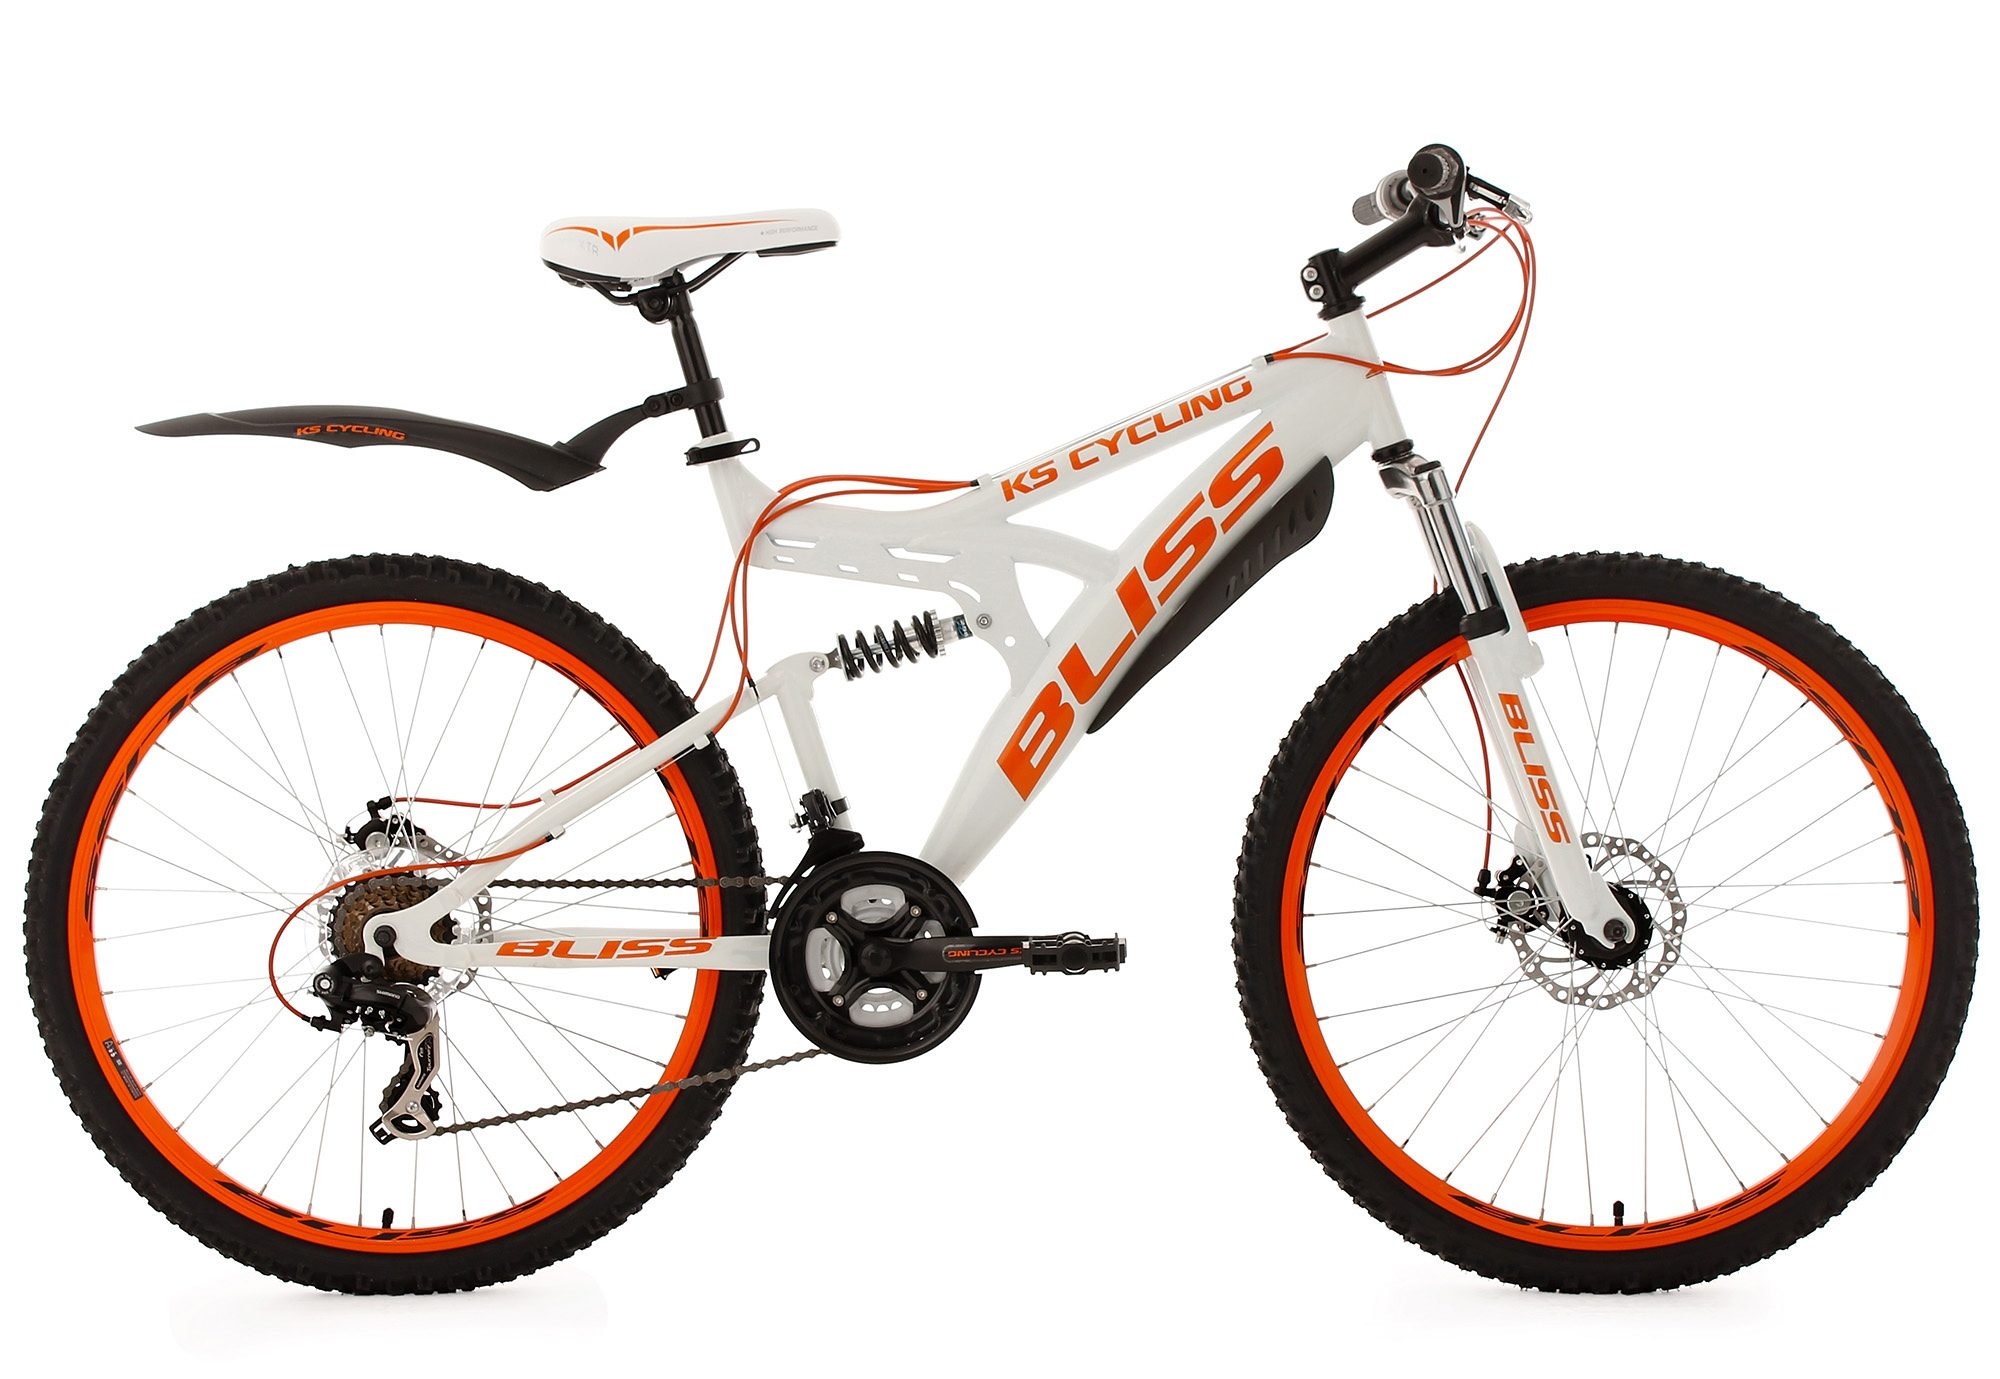 KS Cycling Fully Mountainbike, 26 Zoll, weiß-orange, 21 Gang Kettenschaltung, »Bliss«